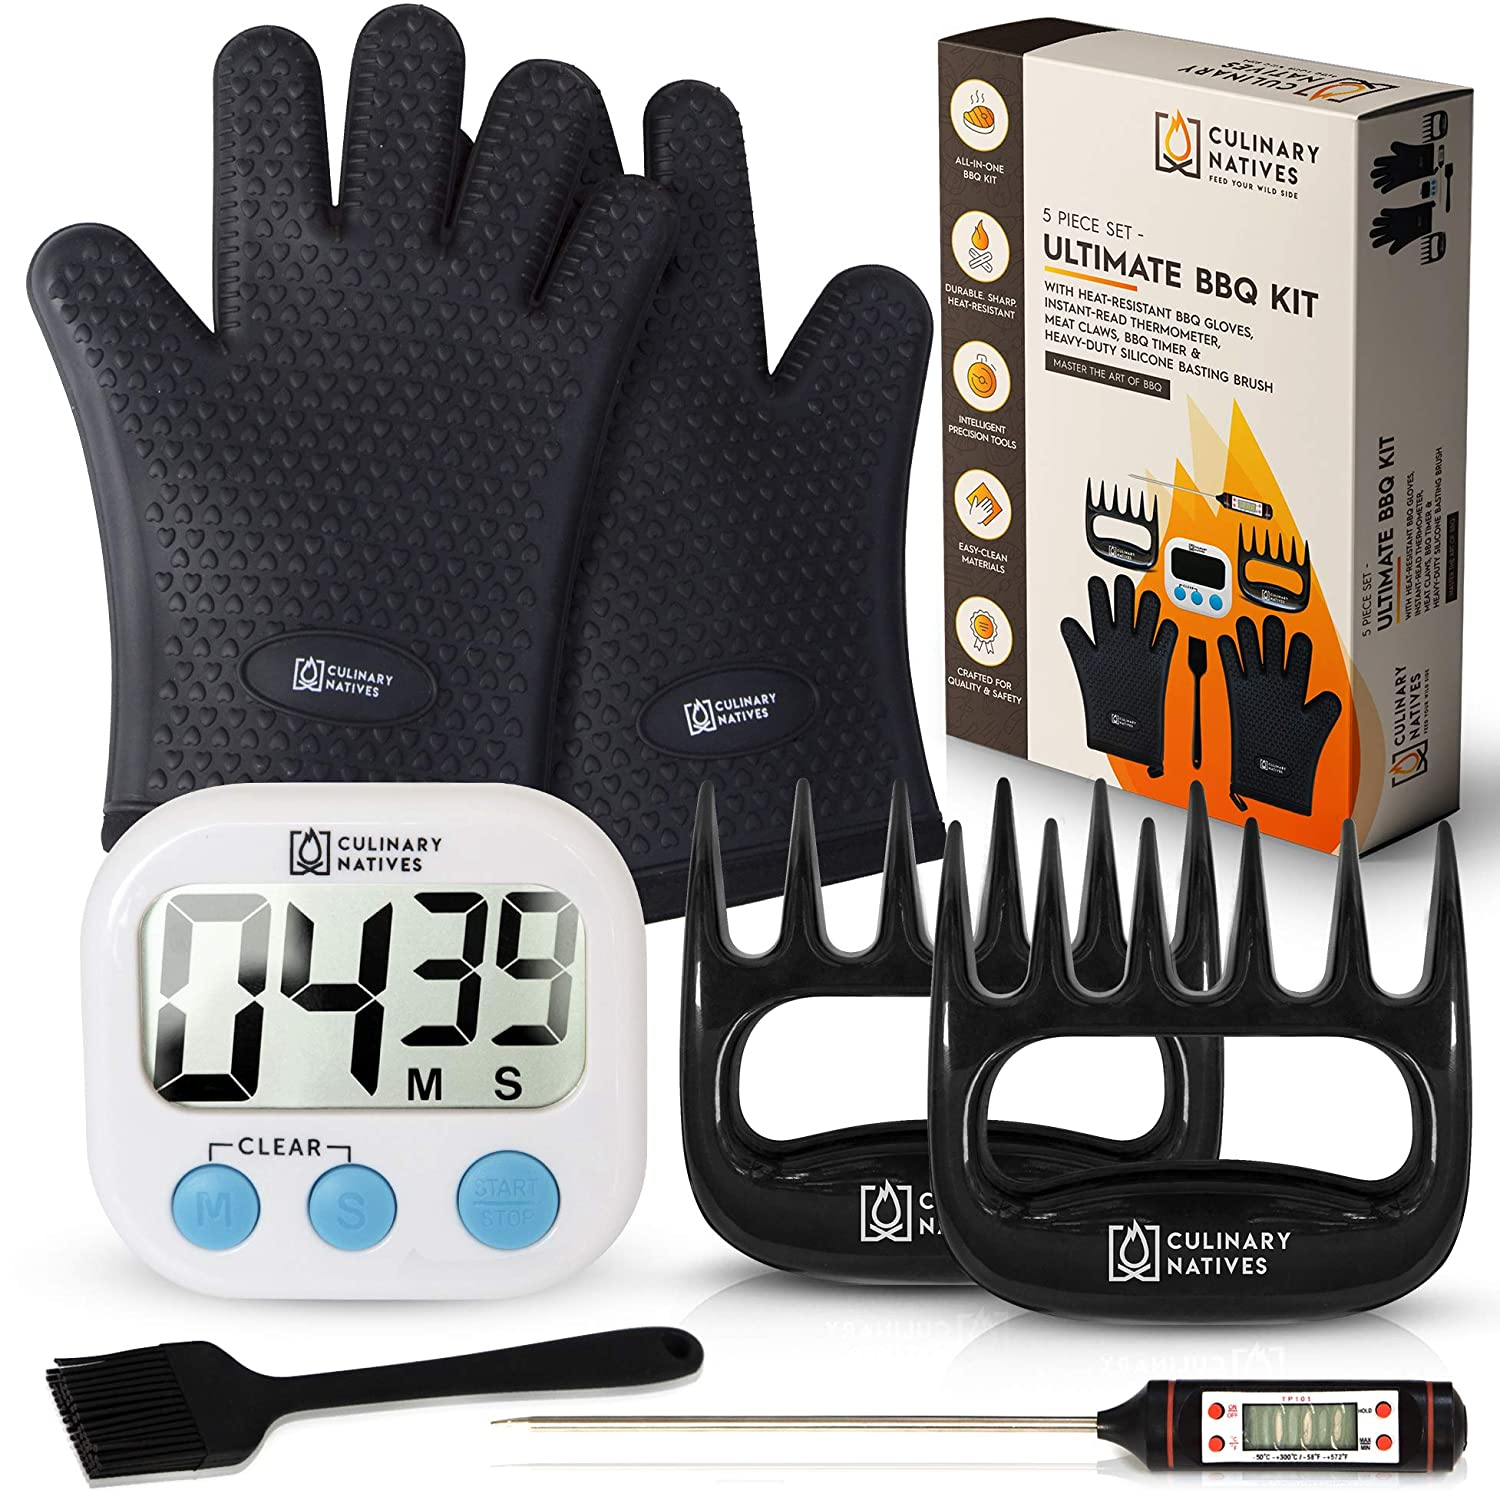 B07MR6JQJT Culinary Natives | BBQ Gloves, Pulled Pork Shredder Claws, Meat Thermometer, Timer | Quilted Gloves (with Heat-Resistant Cotton) | No.1 Grilling/Smoker Accessories with BBQ Tools (7 Pcs Set) 81uCQW54DsL